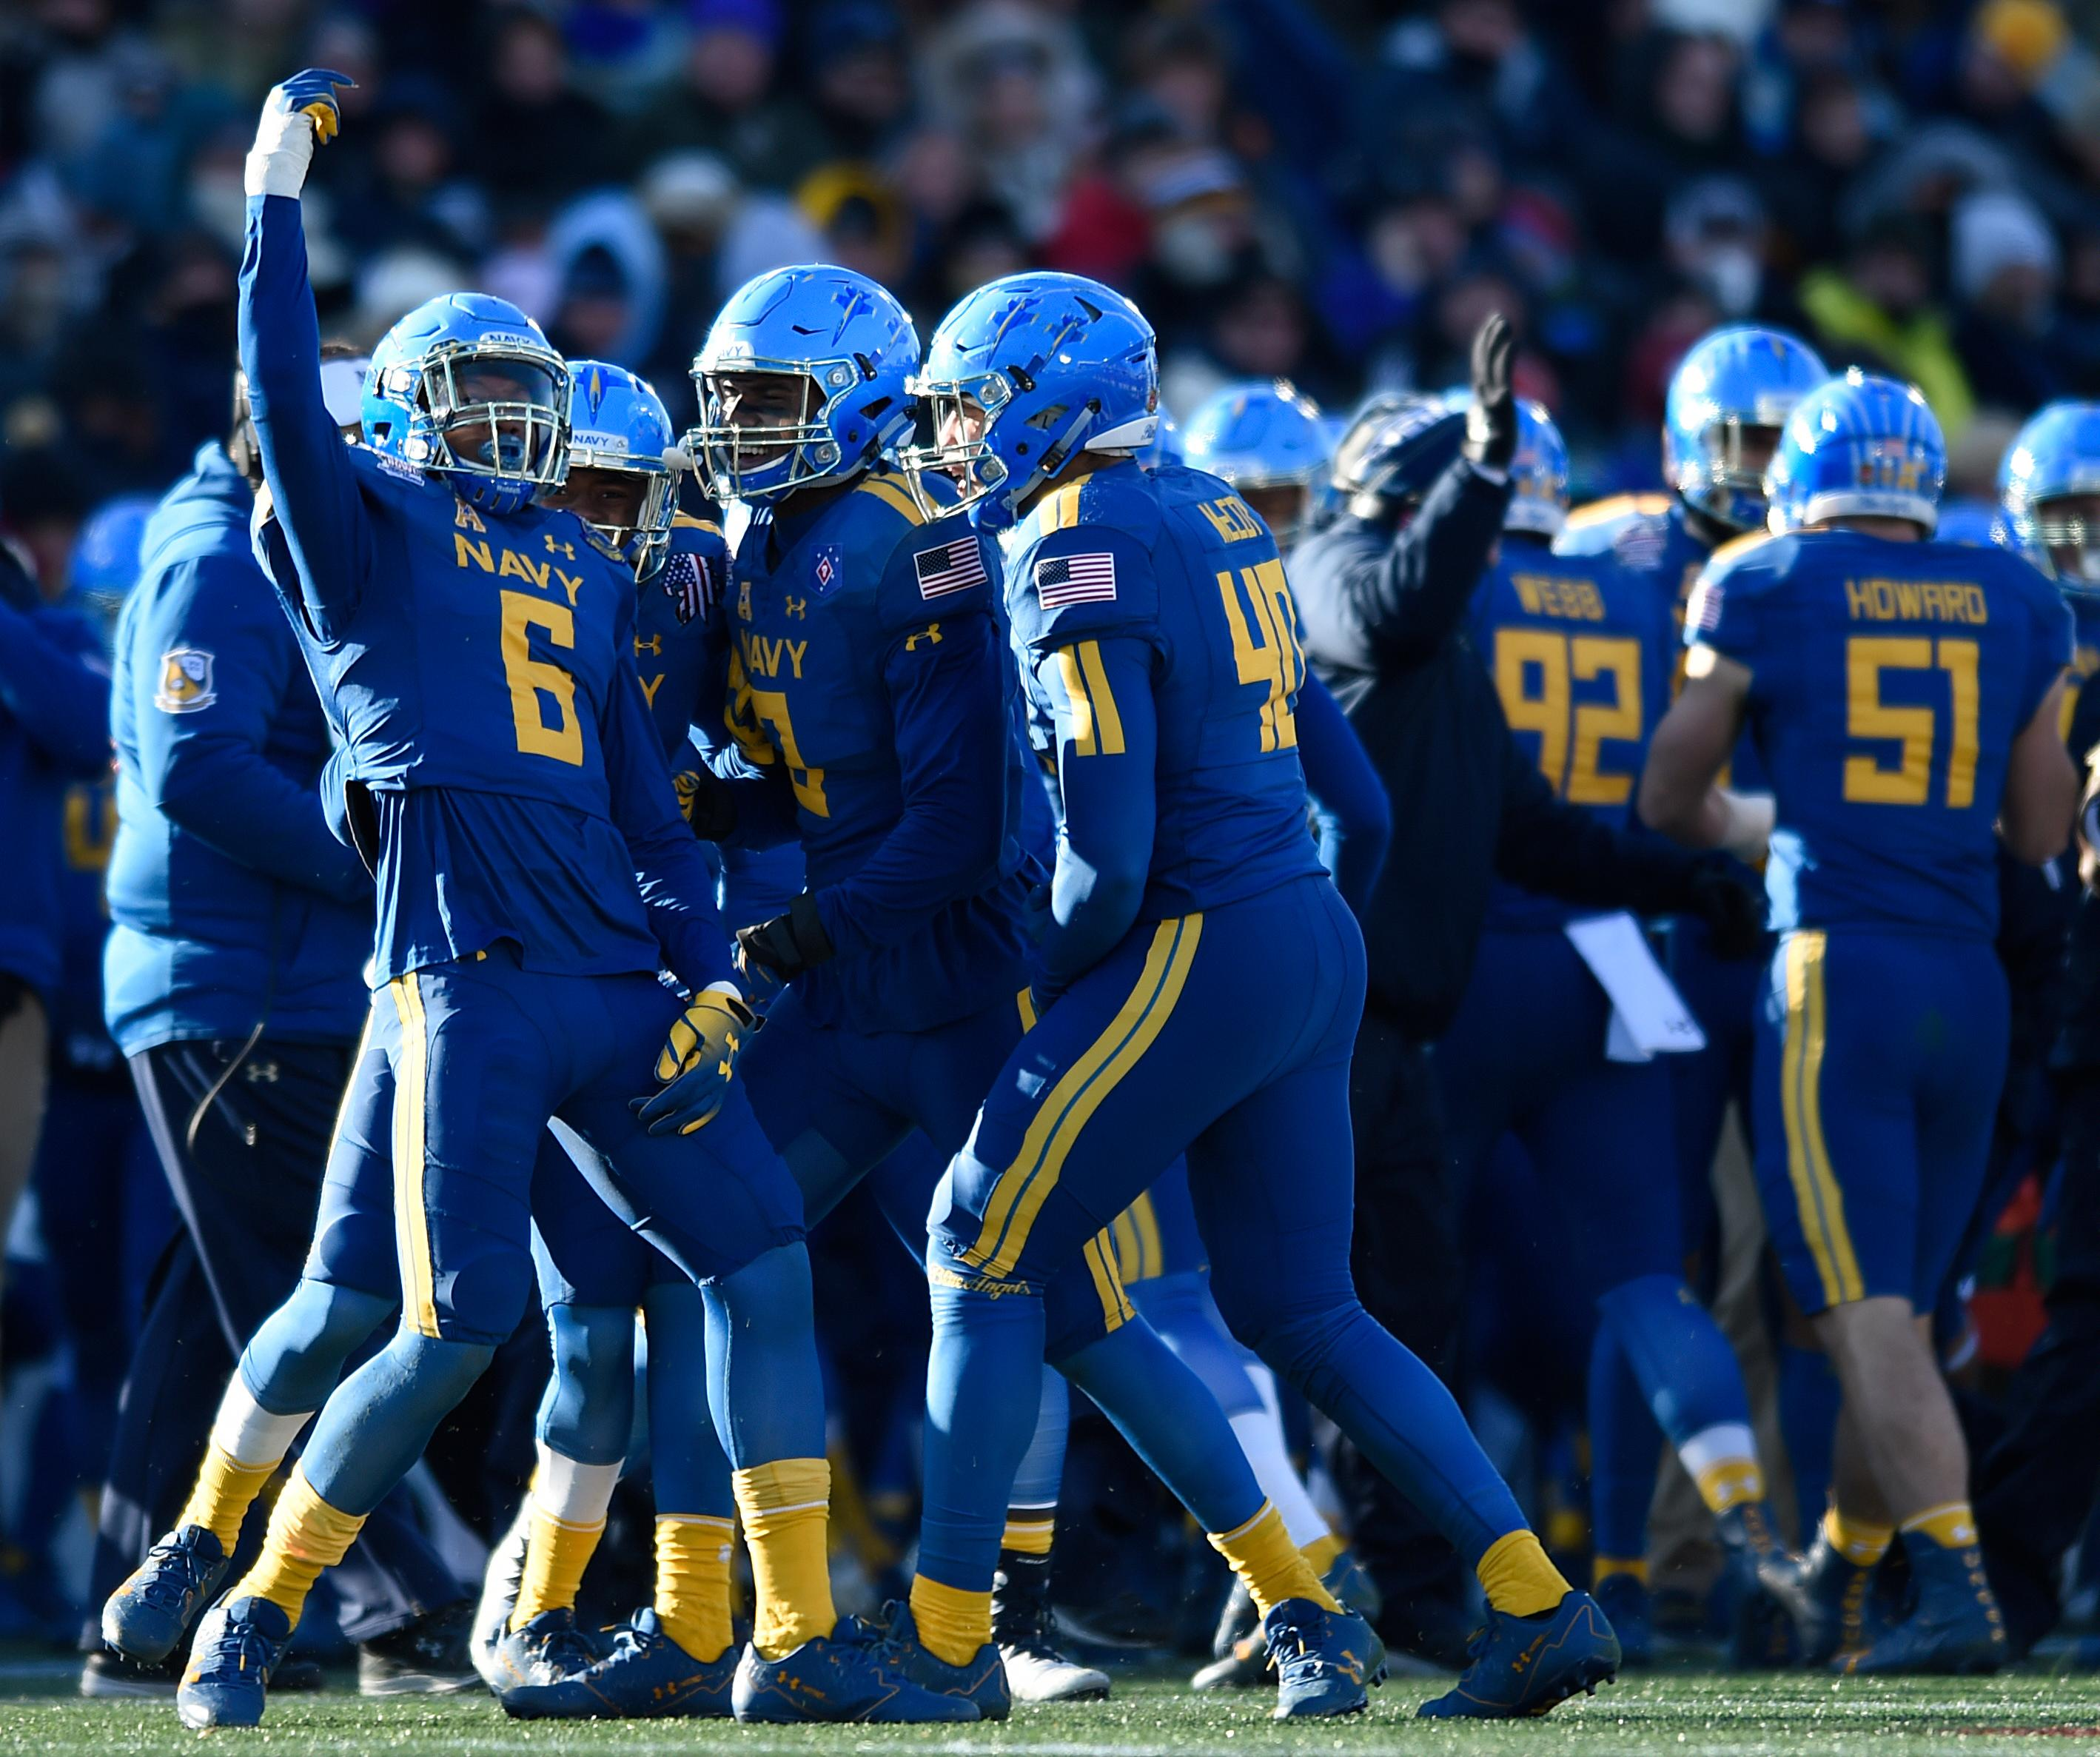 Navy's Sean Williams, left, celebrate his interception against Virginia in the first half of the Military Bowl NCAA college football game, Thursday, Dec. 28, 2017, in Annapolis, Md. (AP Photo/Gail Burton)